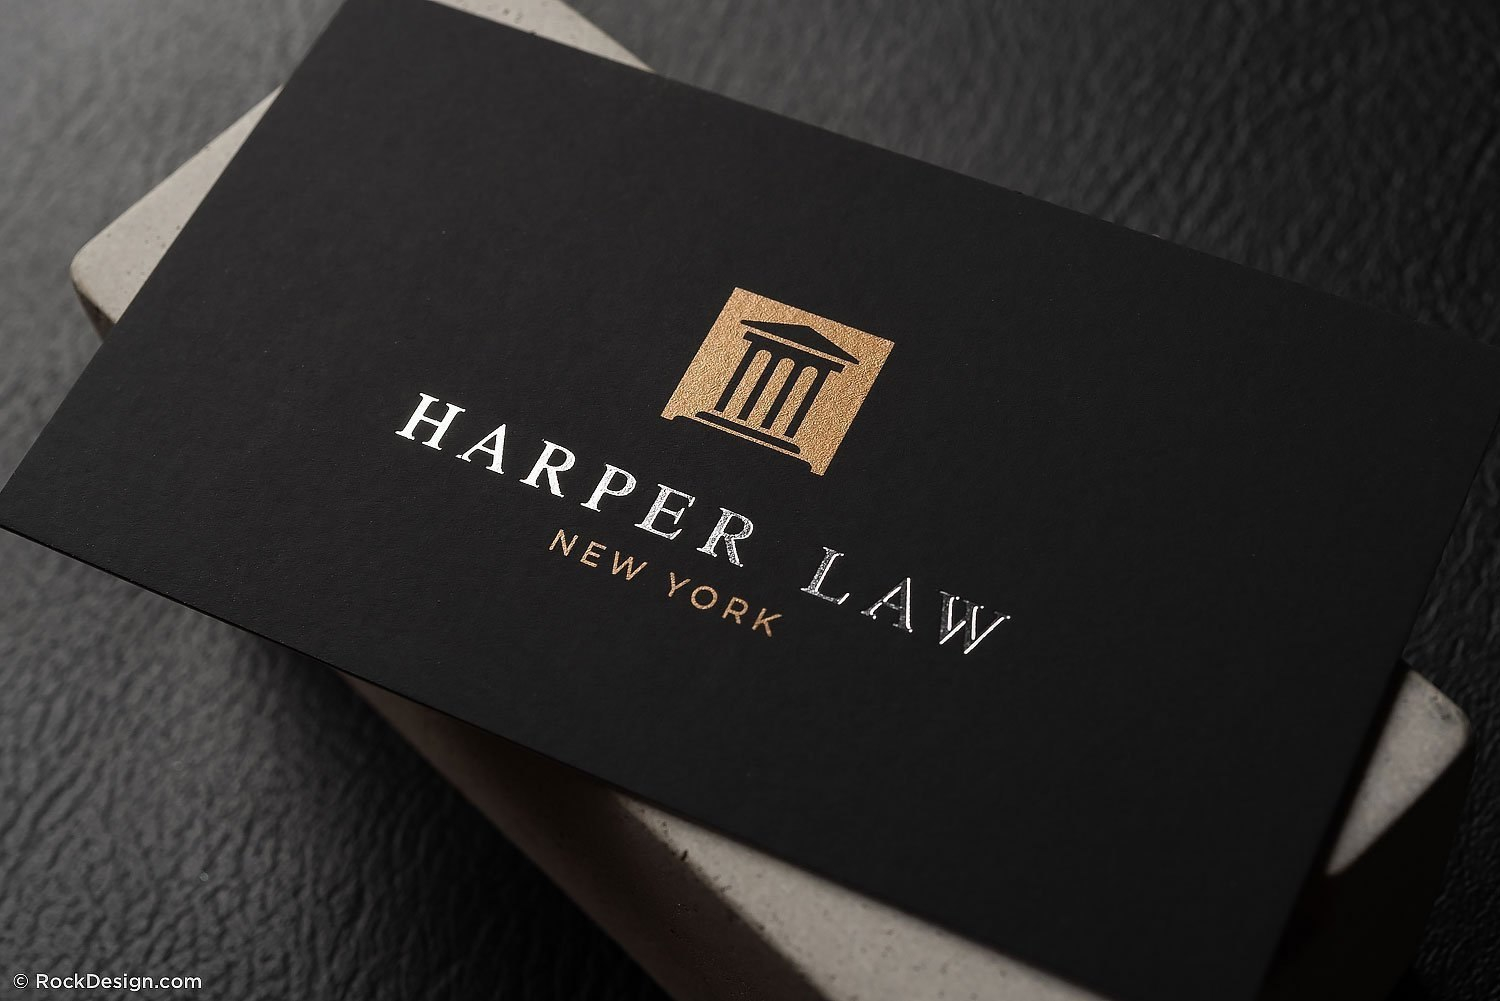 Professional Foil Stamped Lawyer Business Card Template  Harper Law For Lawyer Business Cards Templates